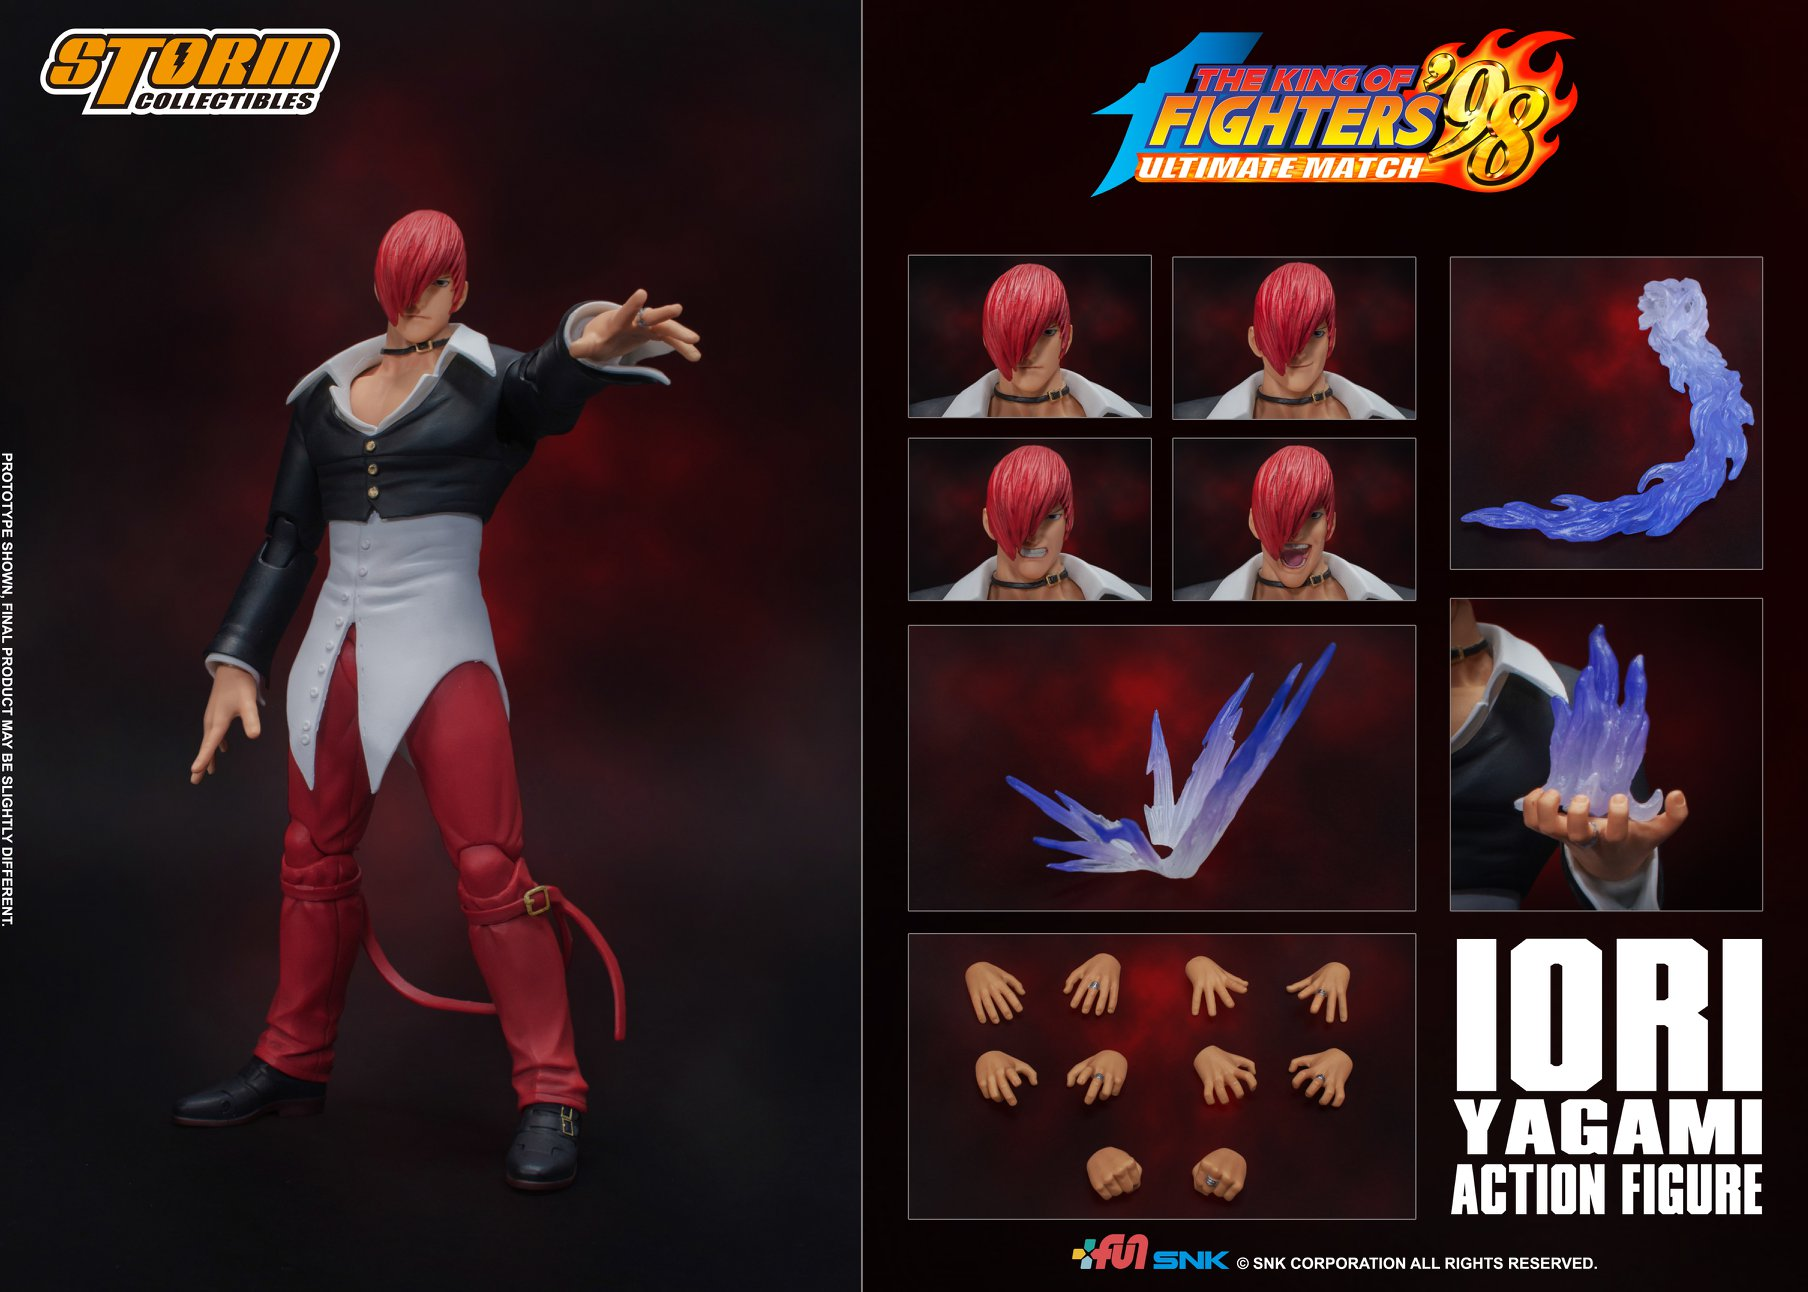 King of Fighters' 98 - Iori Yagami 1/12 Action Figure